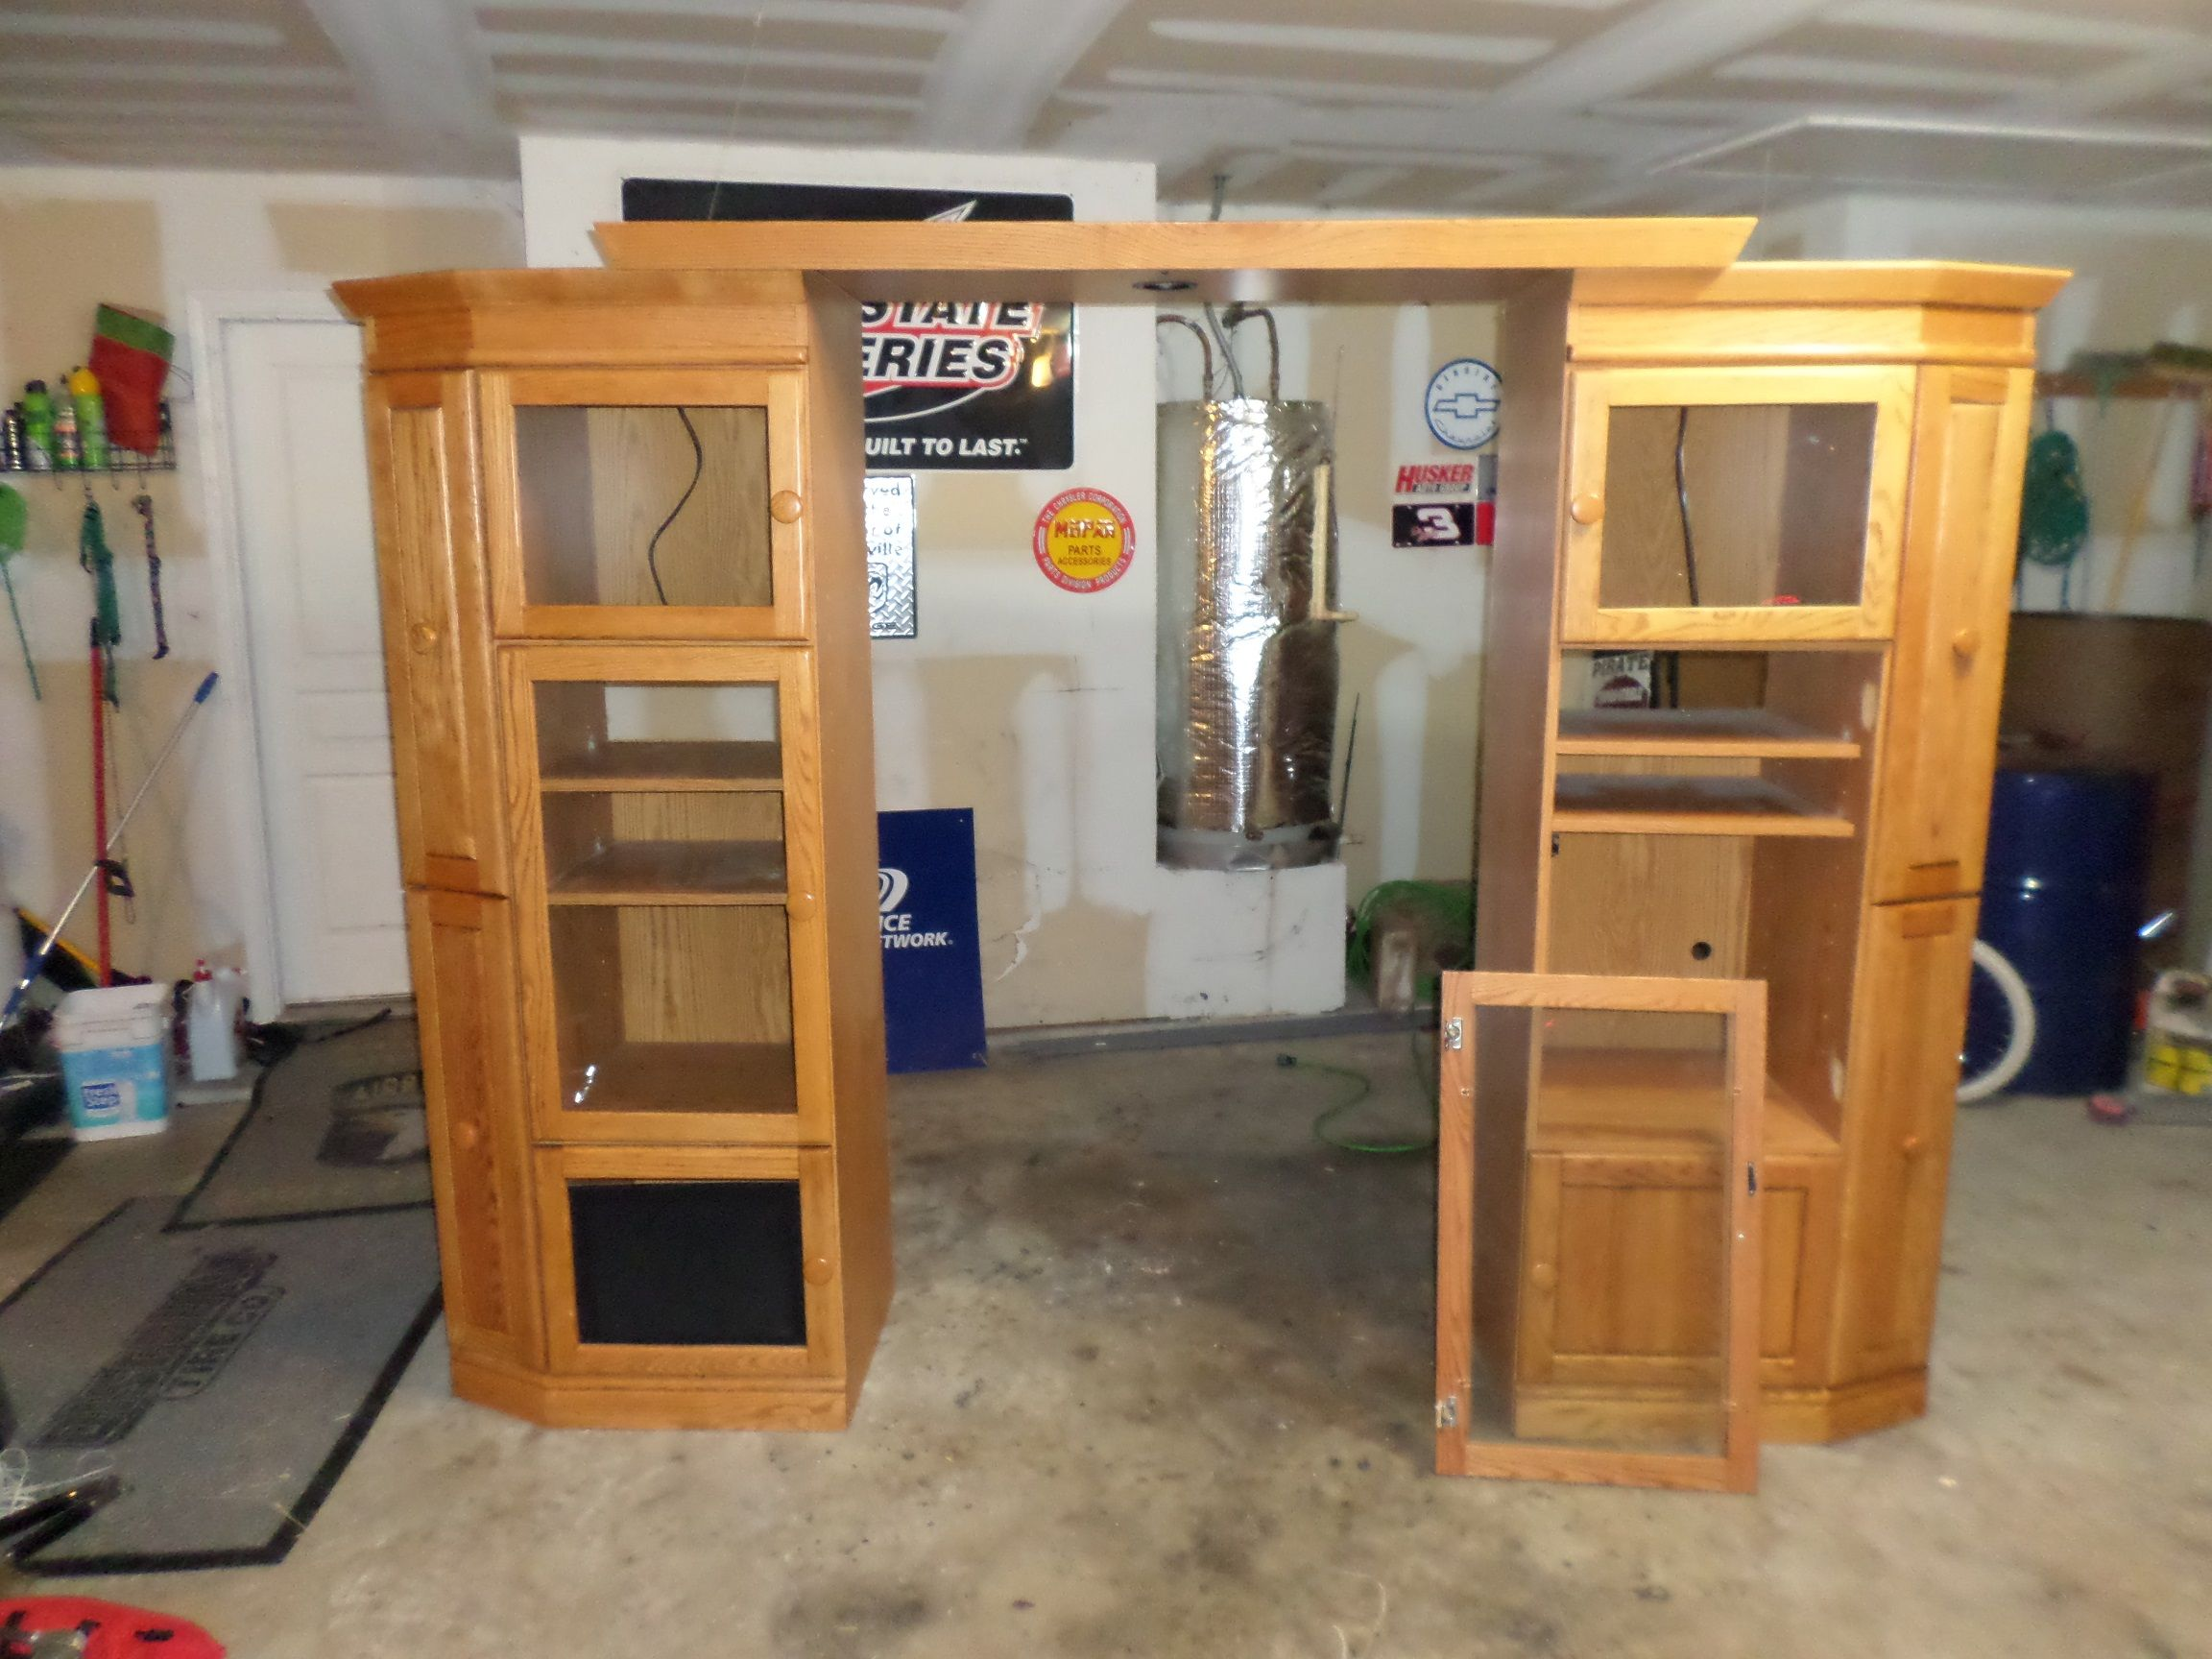 OAK entertainment center in Kurt's Garage Sale in St Paul , TX for $200. Large entertainment center fits up to a 60 inch tv. has adjustable bridge and shelving. Real wood cabinet doors and faces.one door has been pulled loose from cabinet.